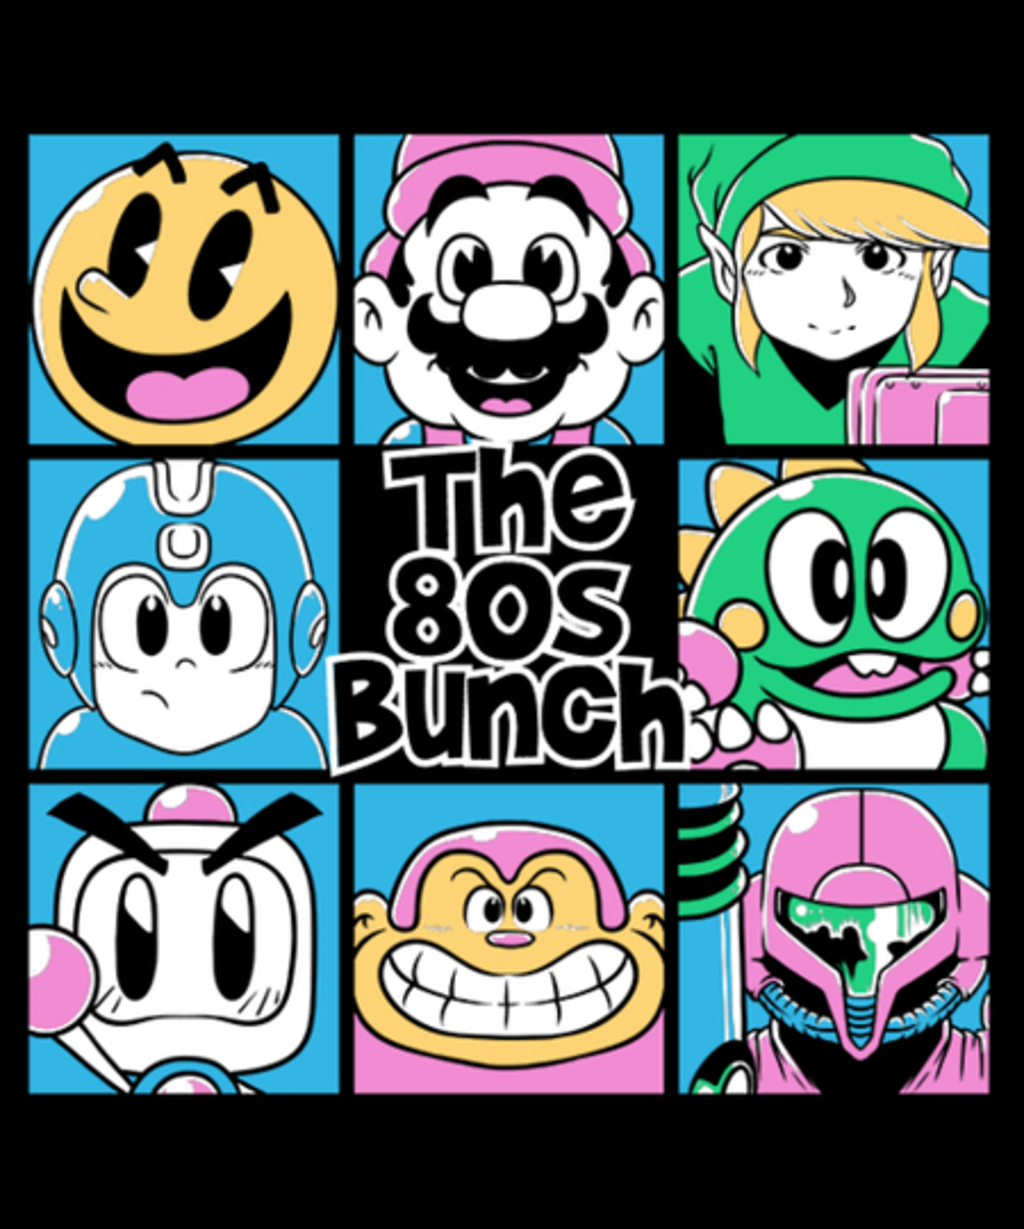 Qwertee: The 80s Bunch